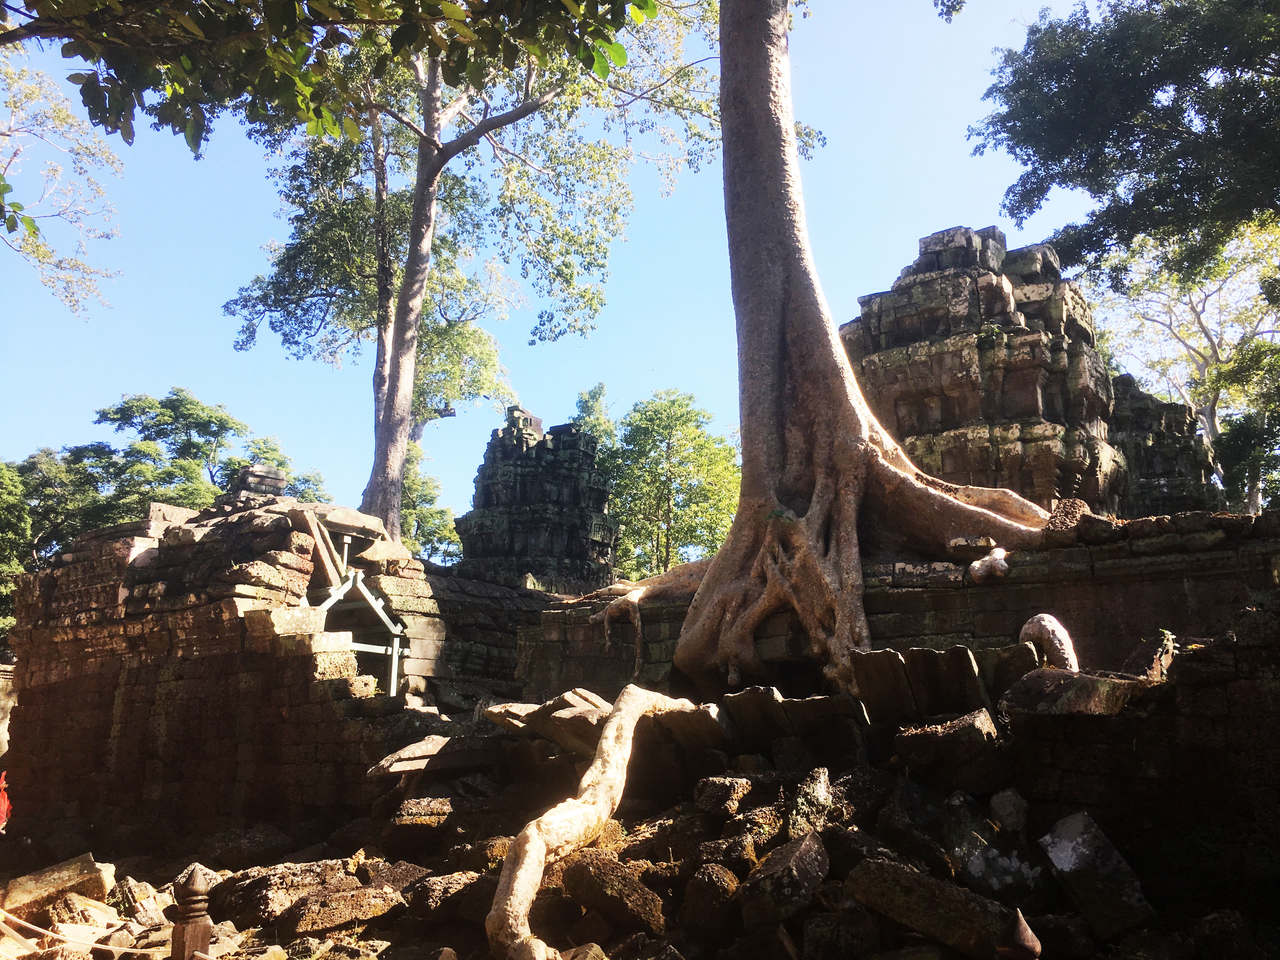 TaProhm4_Easy-Resize.com